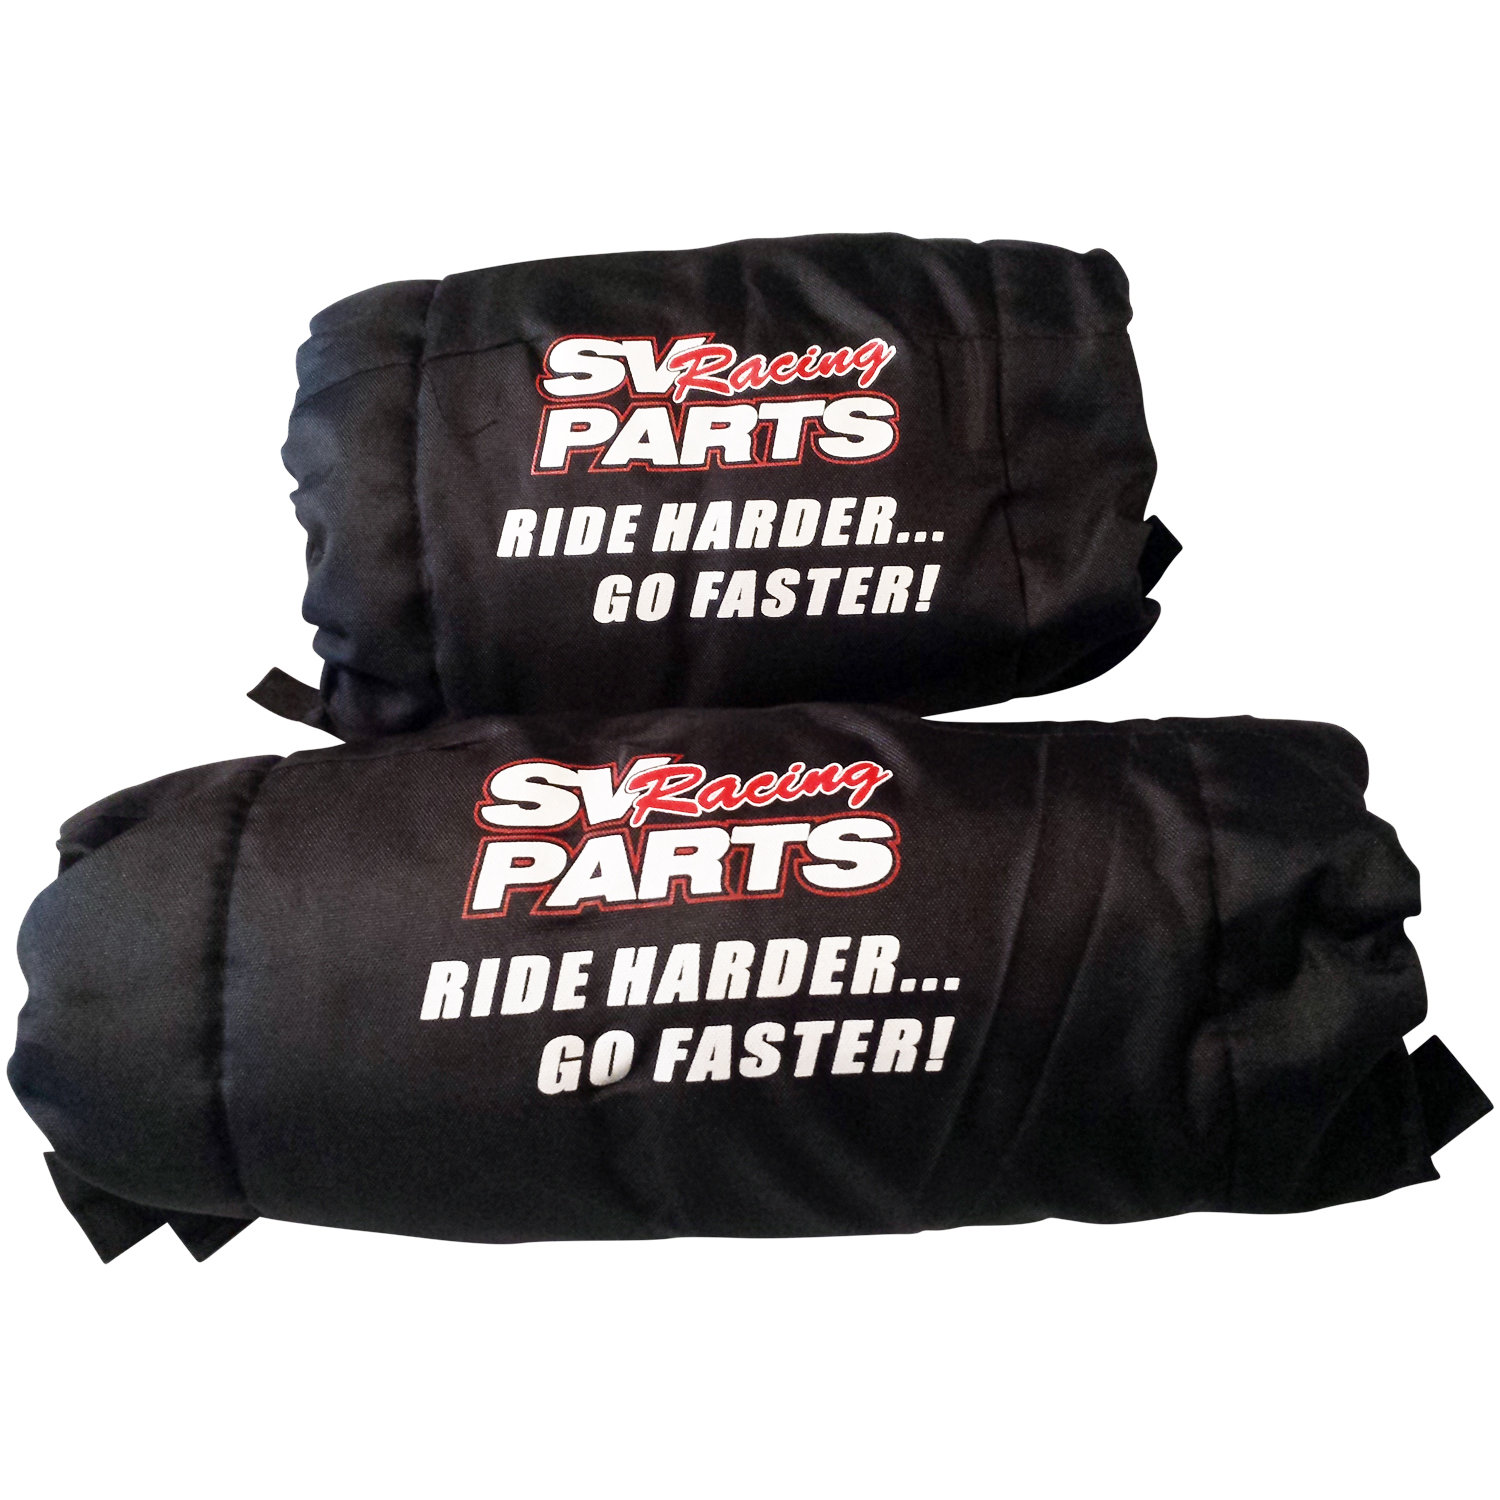 125 Series Tire Warmers, New Tire Warmers for GP125 Race Bikes - Mini-Motard on 17 inch Wheels